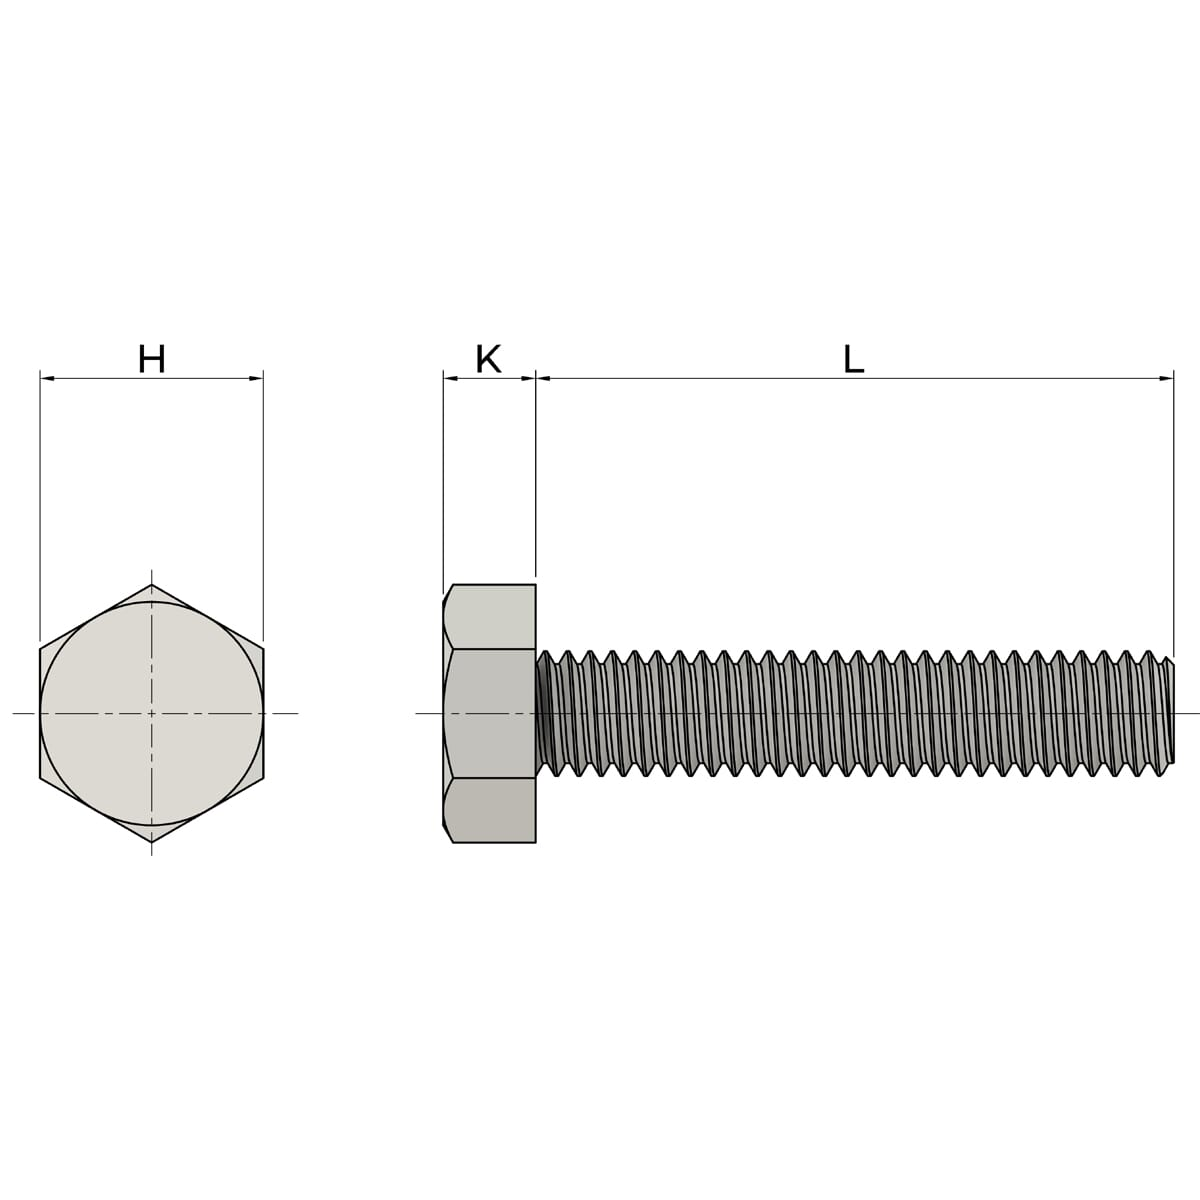 M12 x 95mm Full Thread Hexagon Bolts (DIN 933) - High Tensile Stainless Steel (A4-80) Drawing